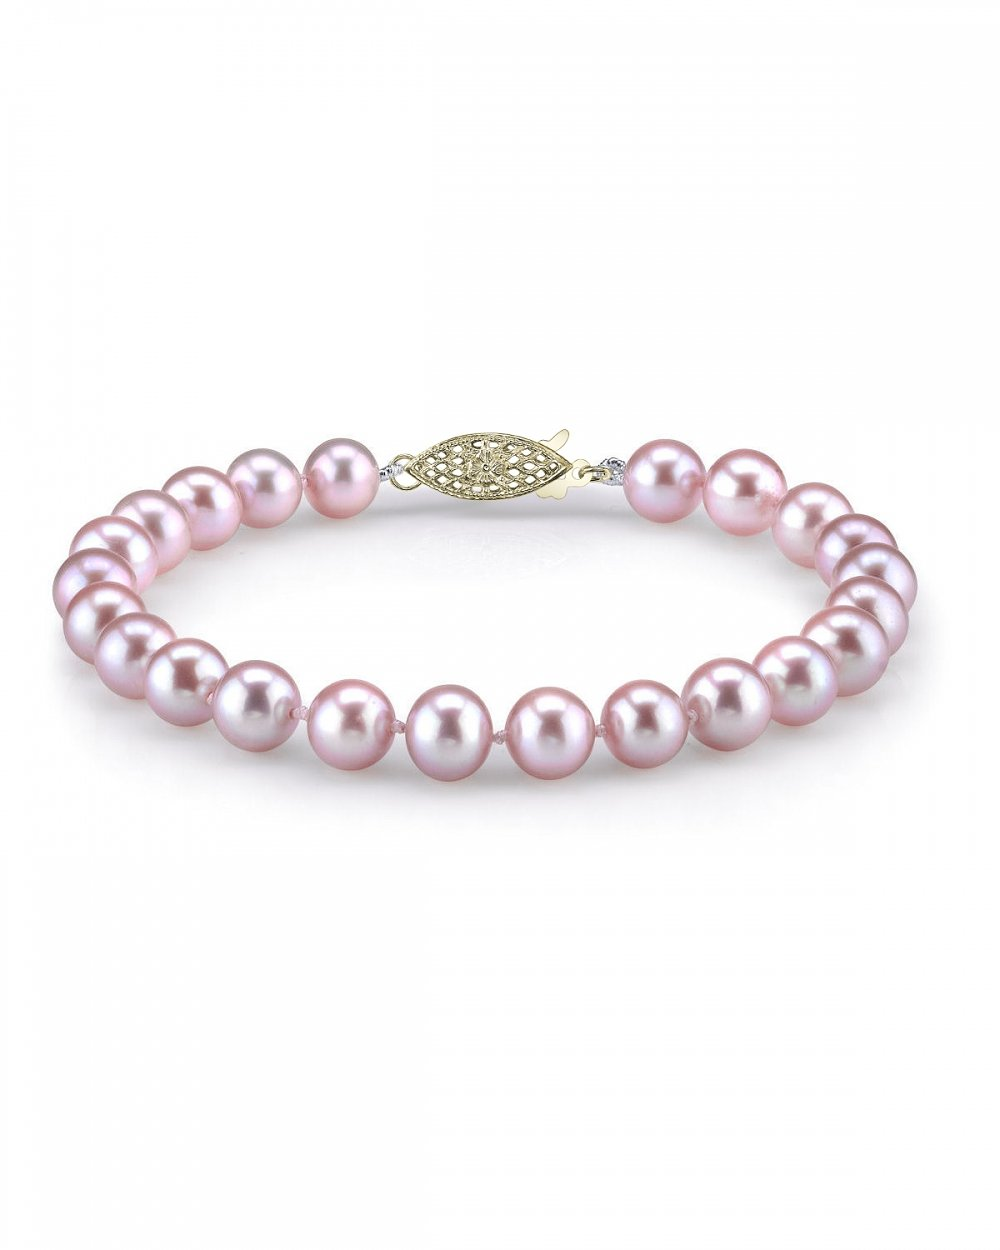 THE PEARL SOURCE 14K Gold 7-8mm AAA Quality Round Pink Freshwater Cultured Pearl Bracelet for Women